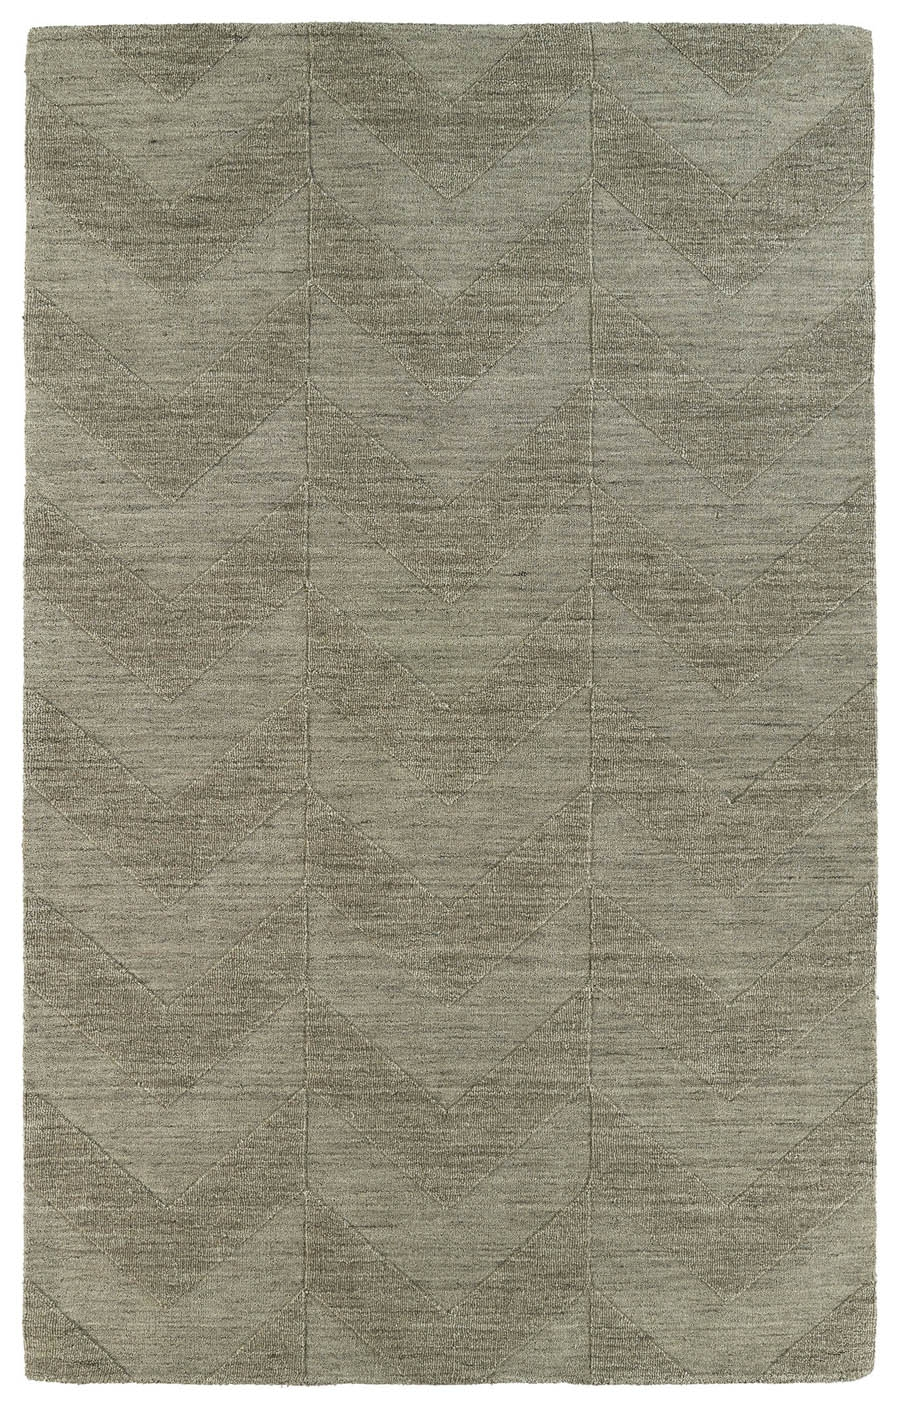 Kaleen Imprints Modern IPM05 82 Light Brown Rug